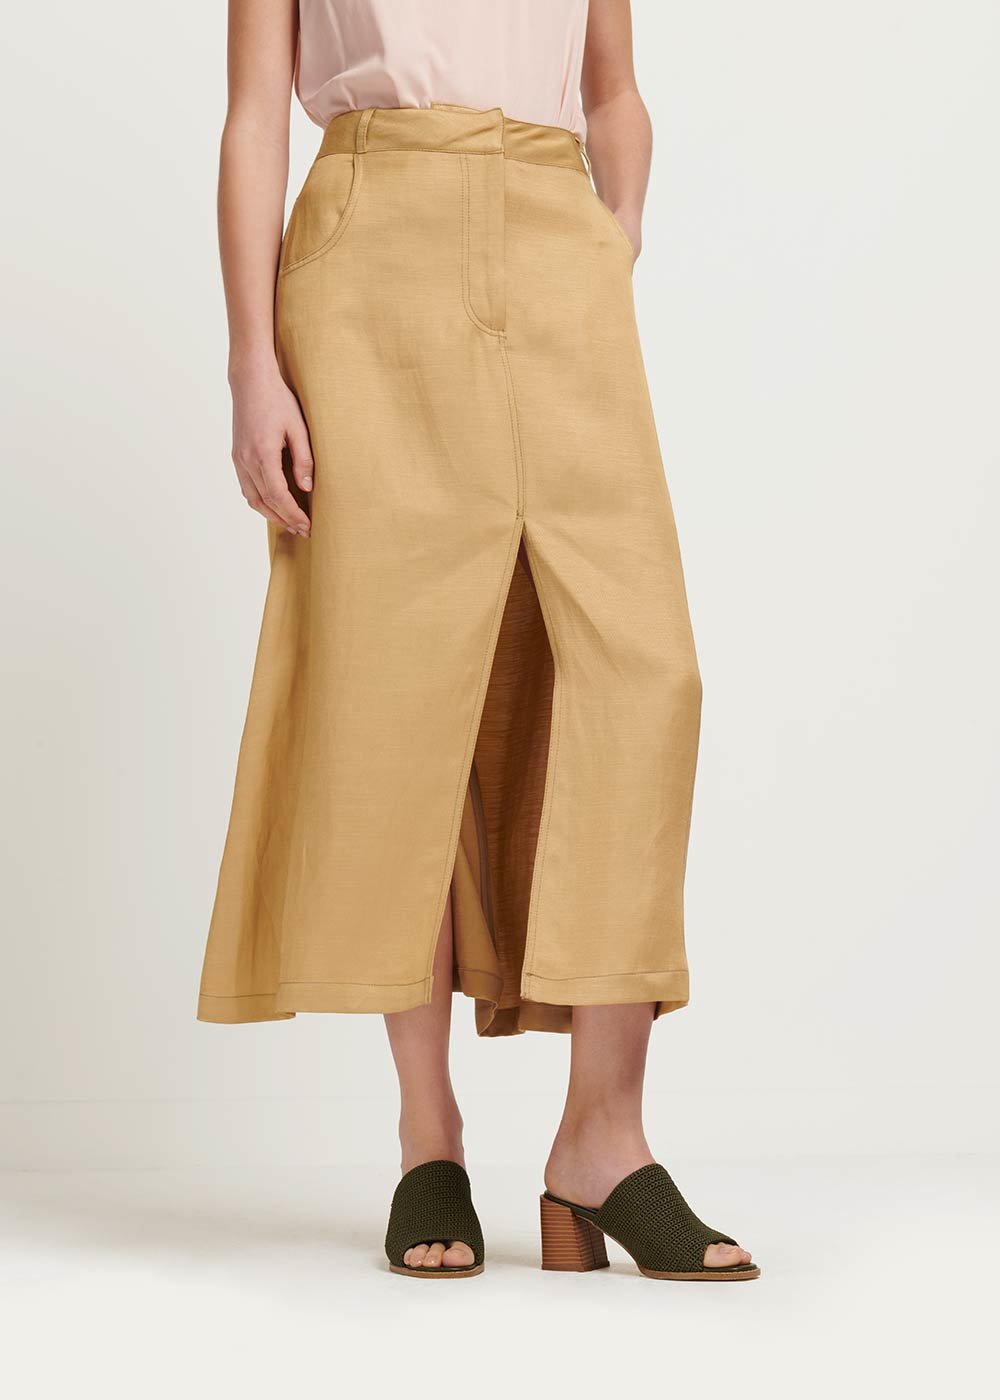 Gaia linen skirt - coconut - Woman